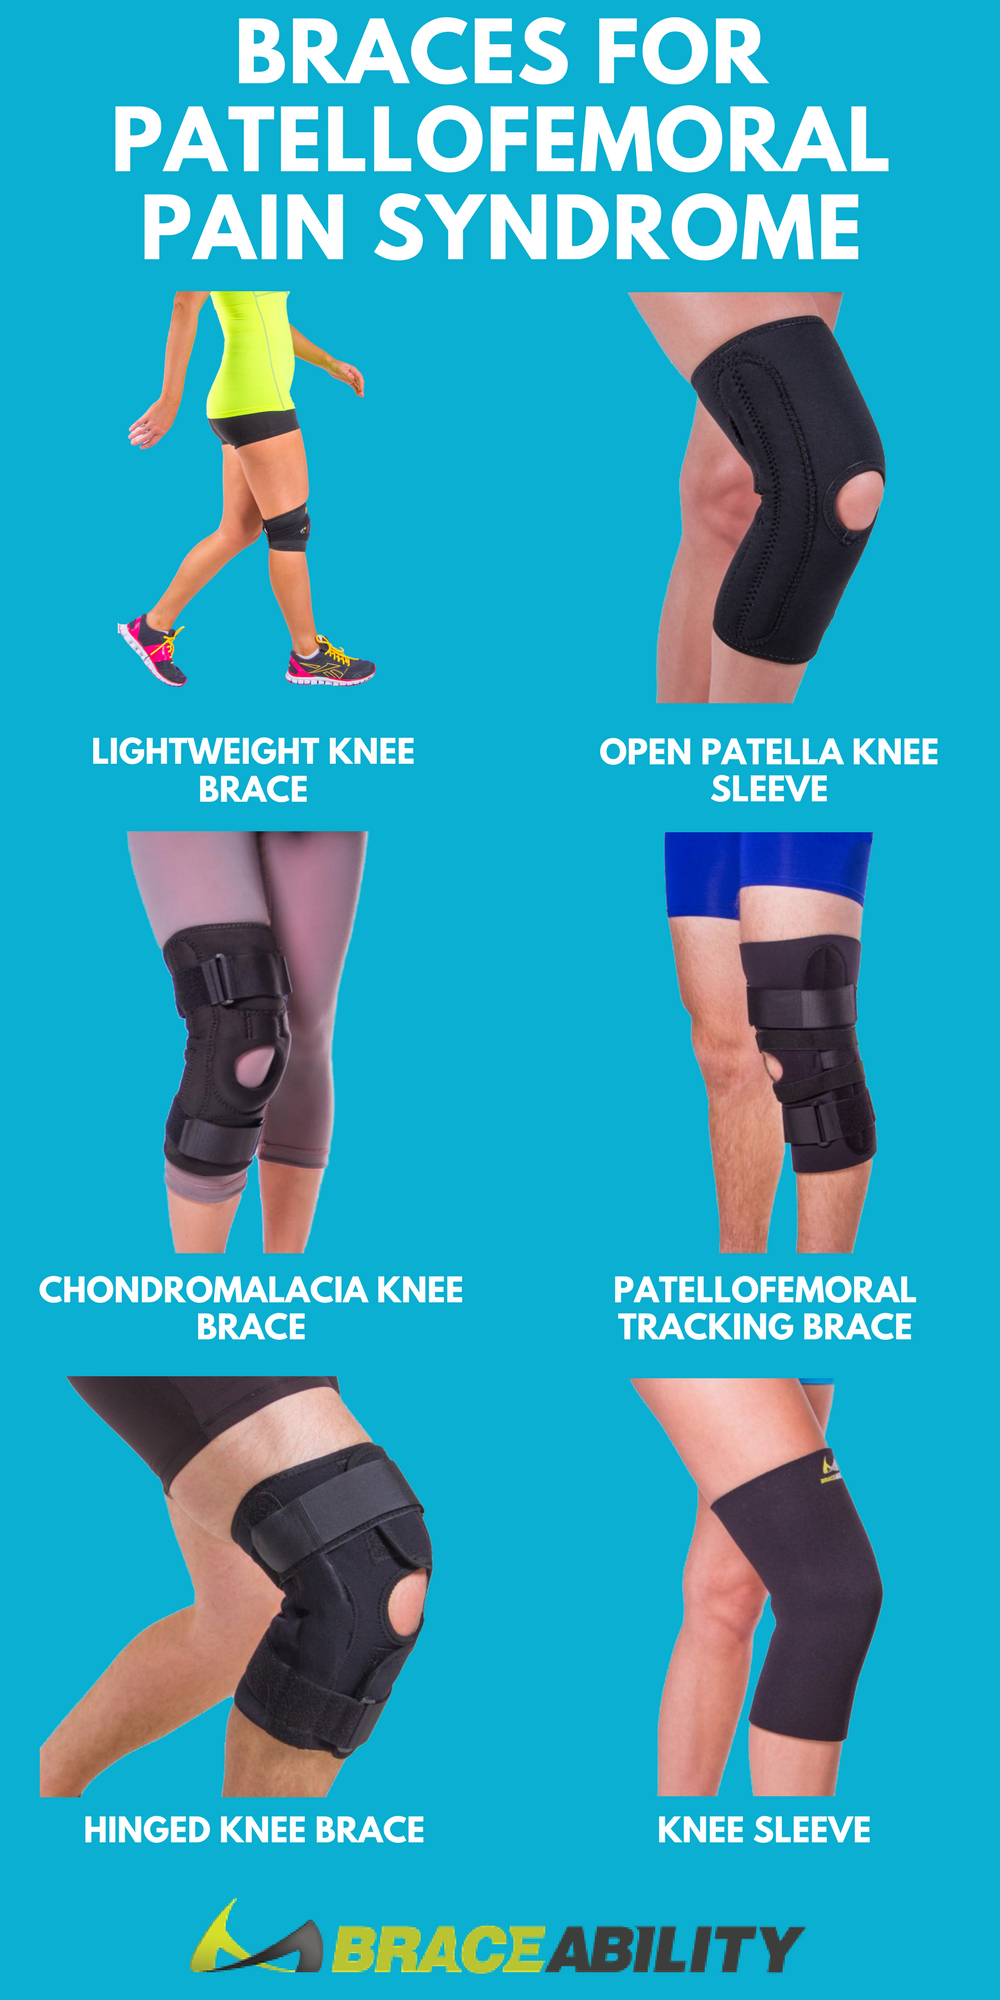 581a30f698 Do you have pain at the front and around your kneecap (patella)? You could  have patellofemoral pain syndrome. These knee braces for patellofemoral  pain ...